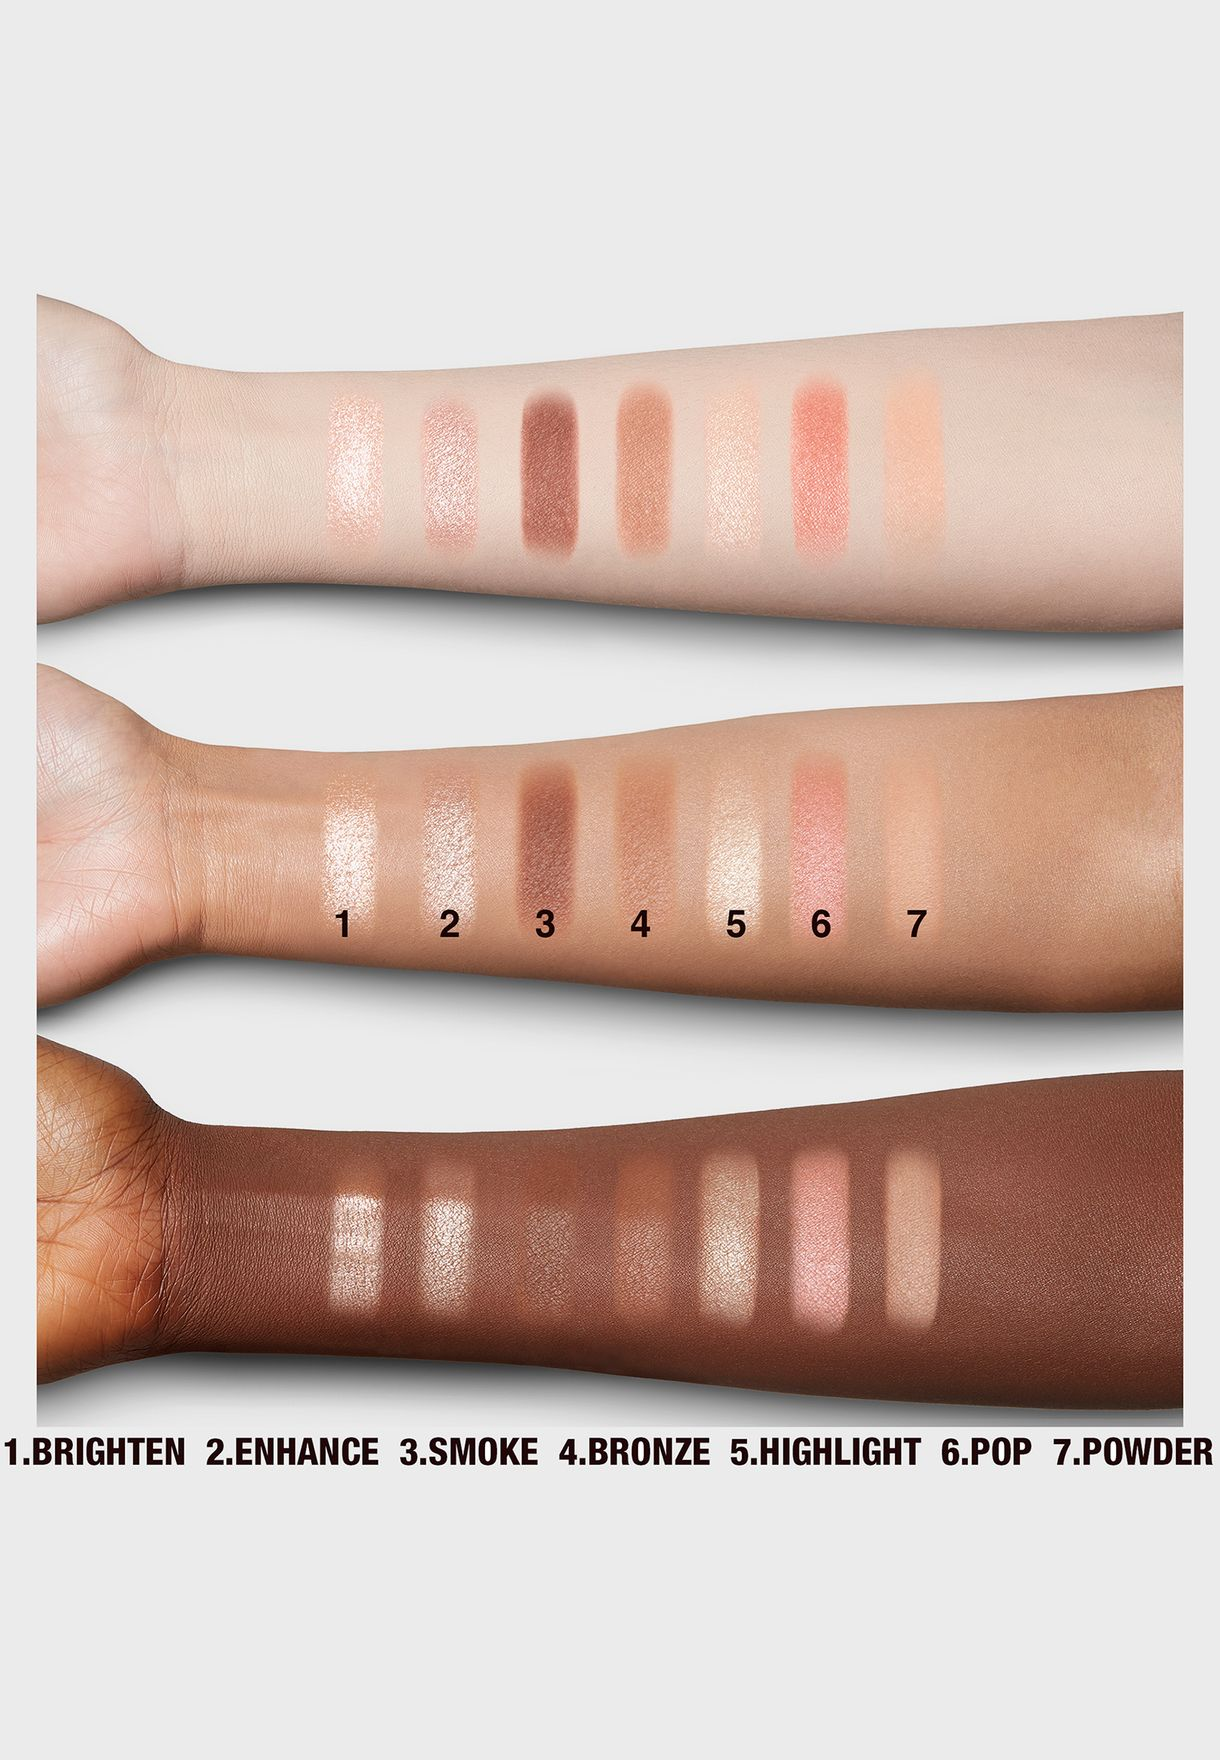 Instant Look Of Love In A Palette - Pretty Blushed Beauty